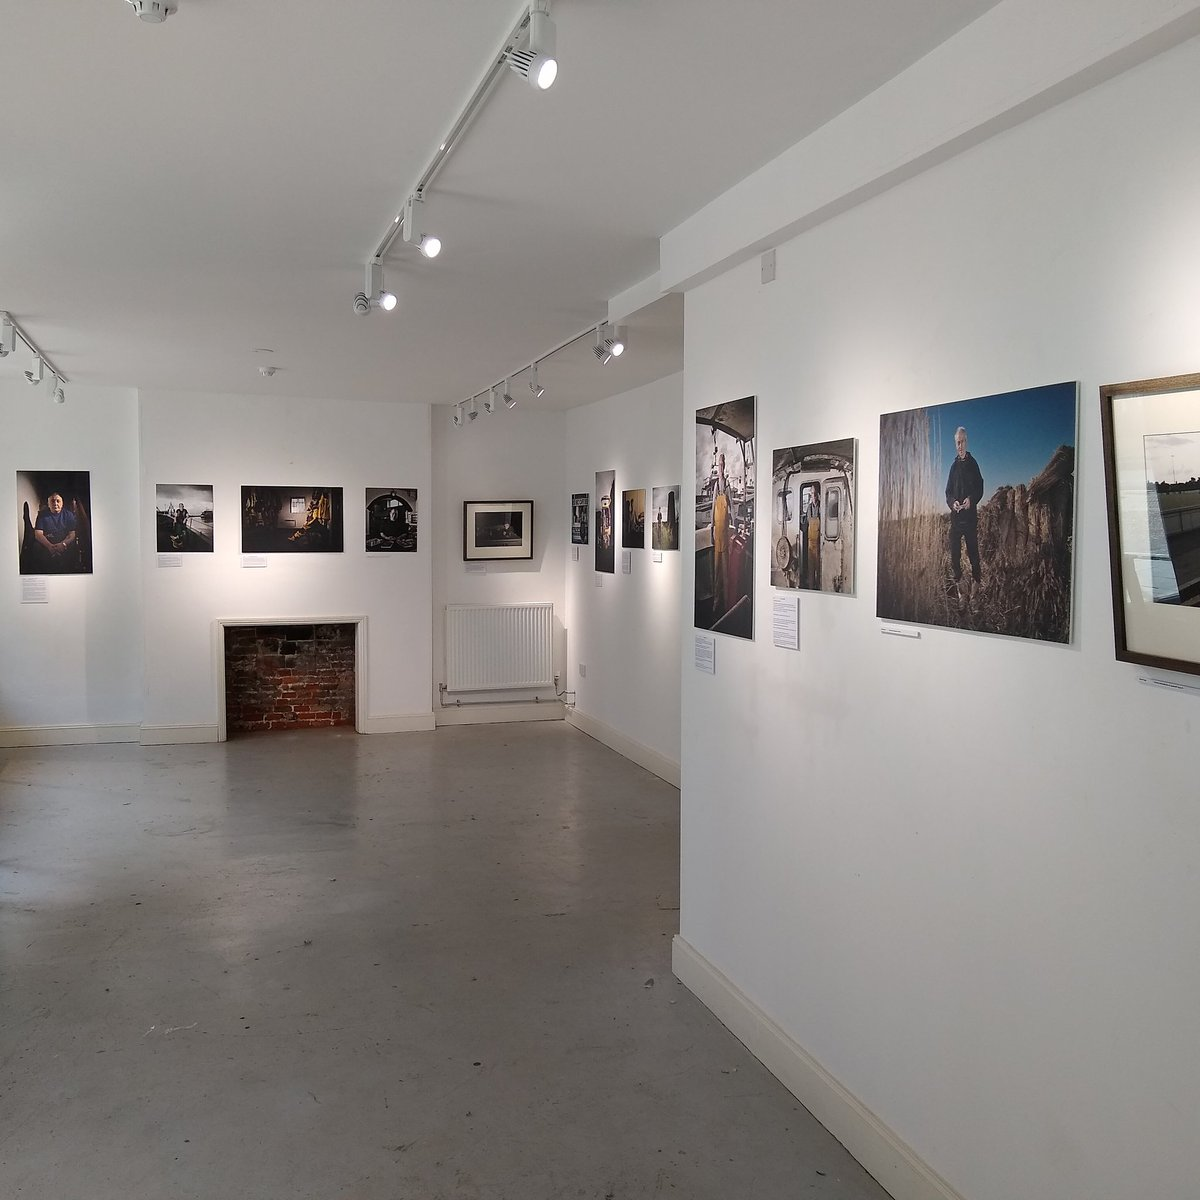 If you are in #GtYarmouth this week drop in and see @Jules_Foto fabulous portrait exhibition. Lots of local legends and some unsung heroes.   @GYMercury @BBCLookEast @Archant @EDP24 @HarbourRadioGY @thisisthebeach